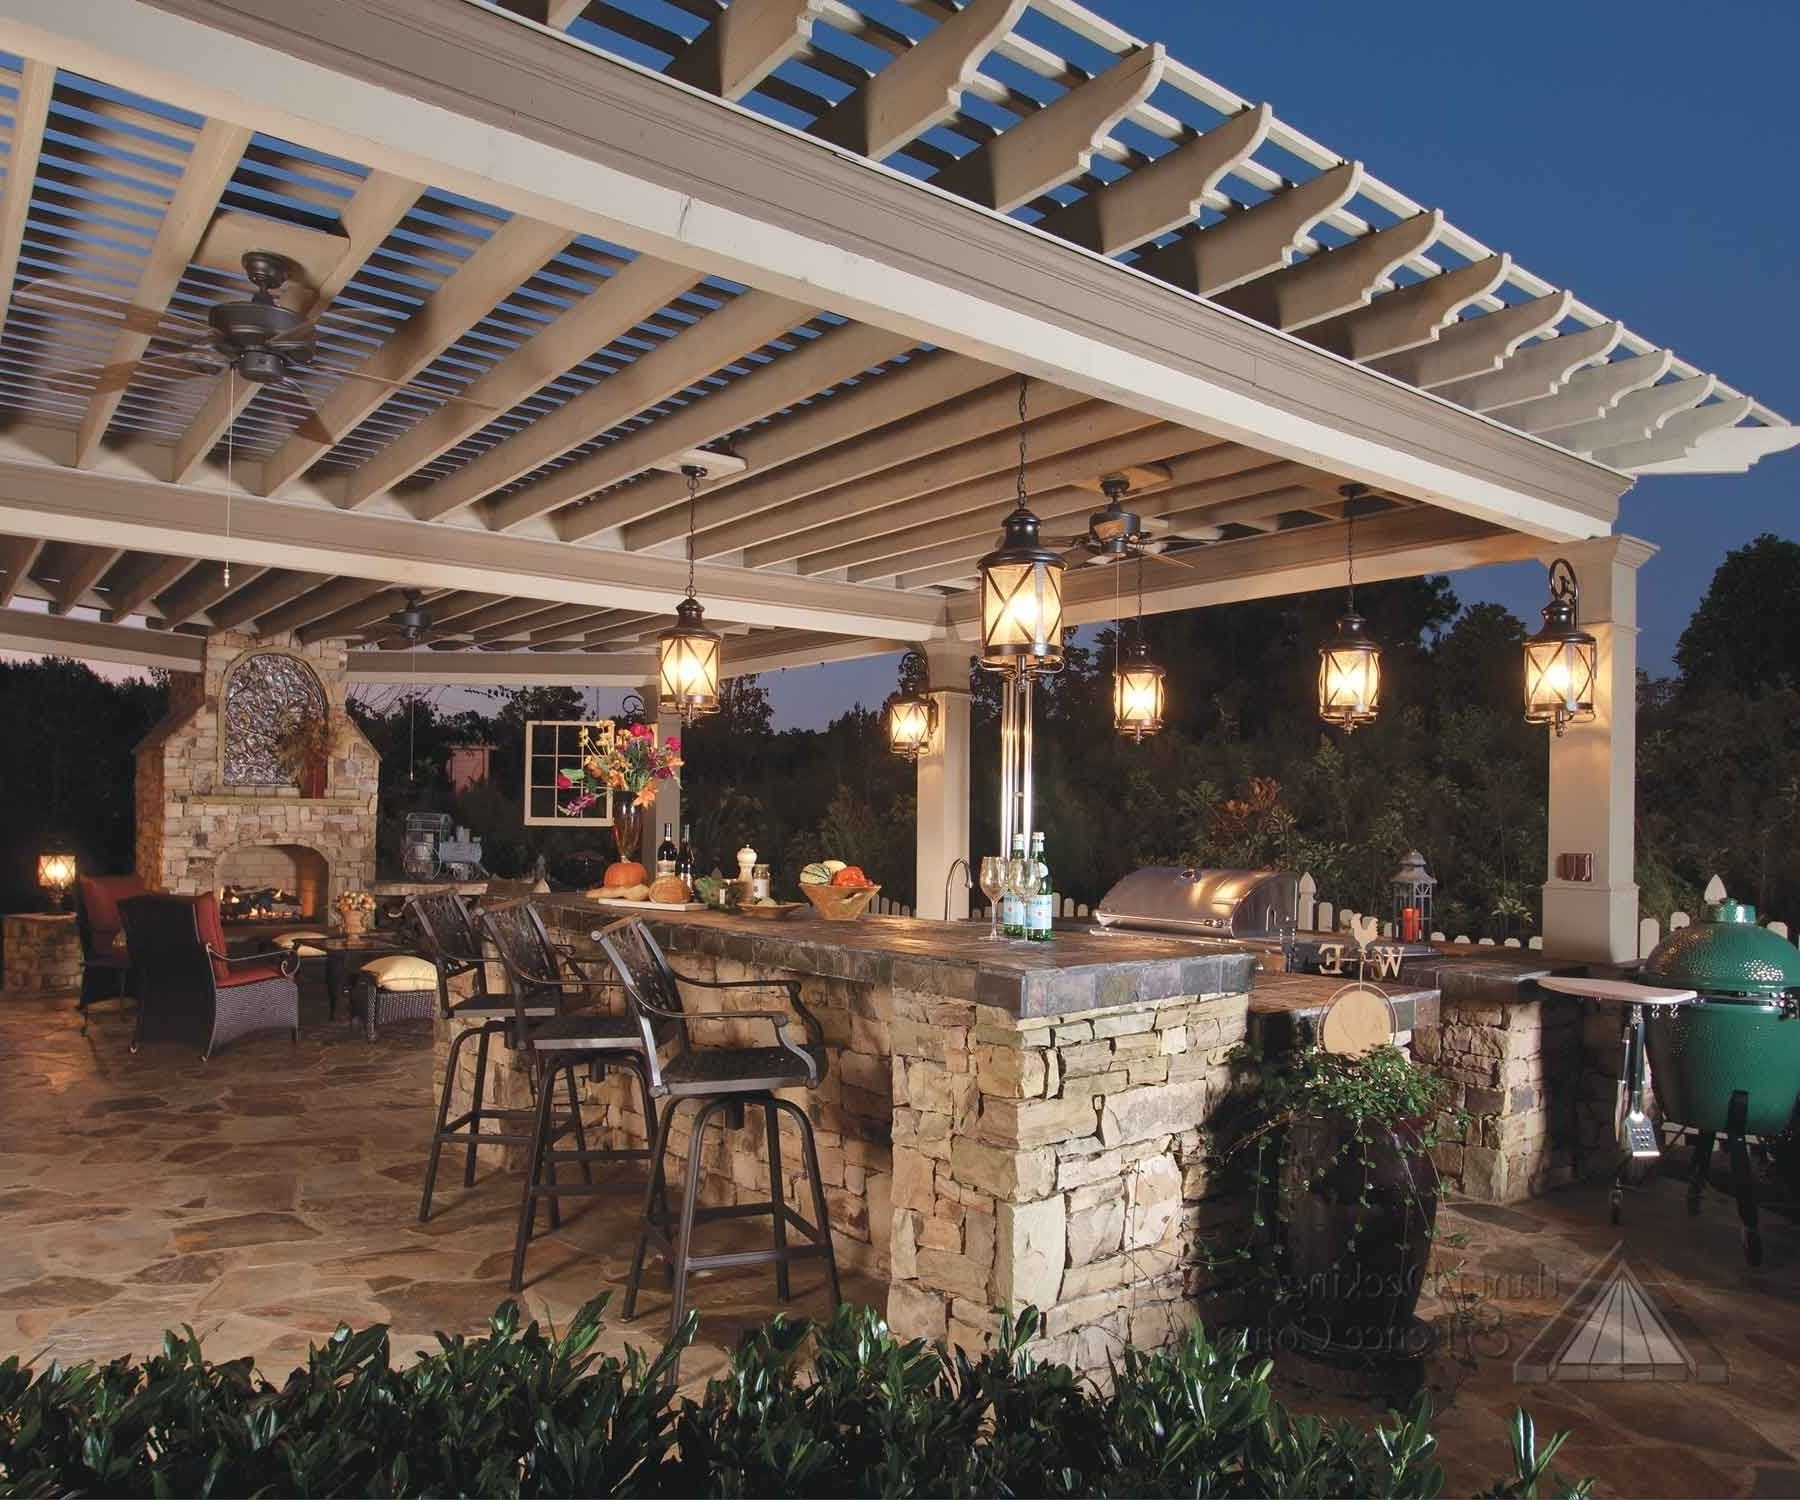 Outdoor Lighting Hanging Fixtures — Bistrodre Porch And Landscape Ideas In Outdoor Hanging Lights For Pergola (View 4 of 15)